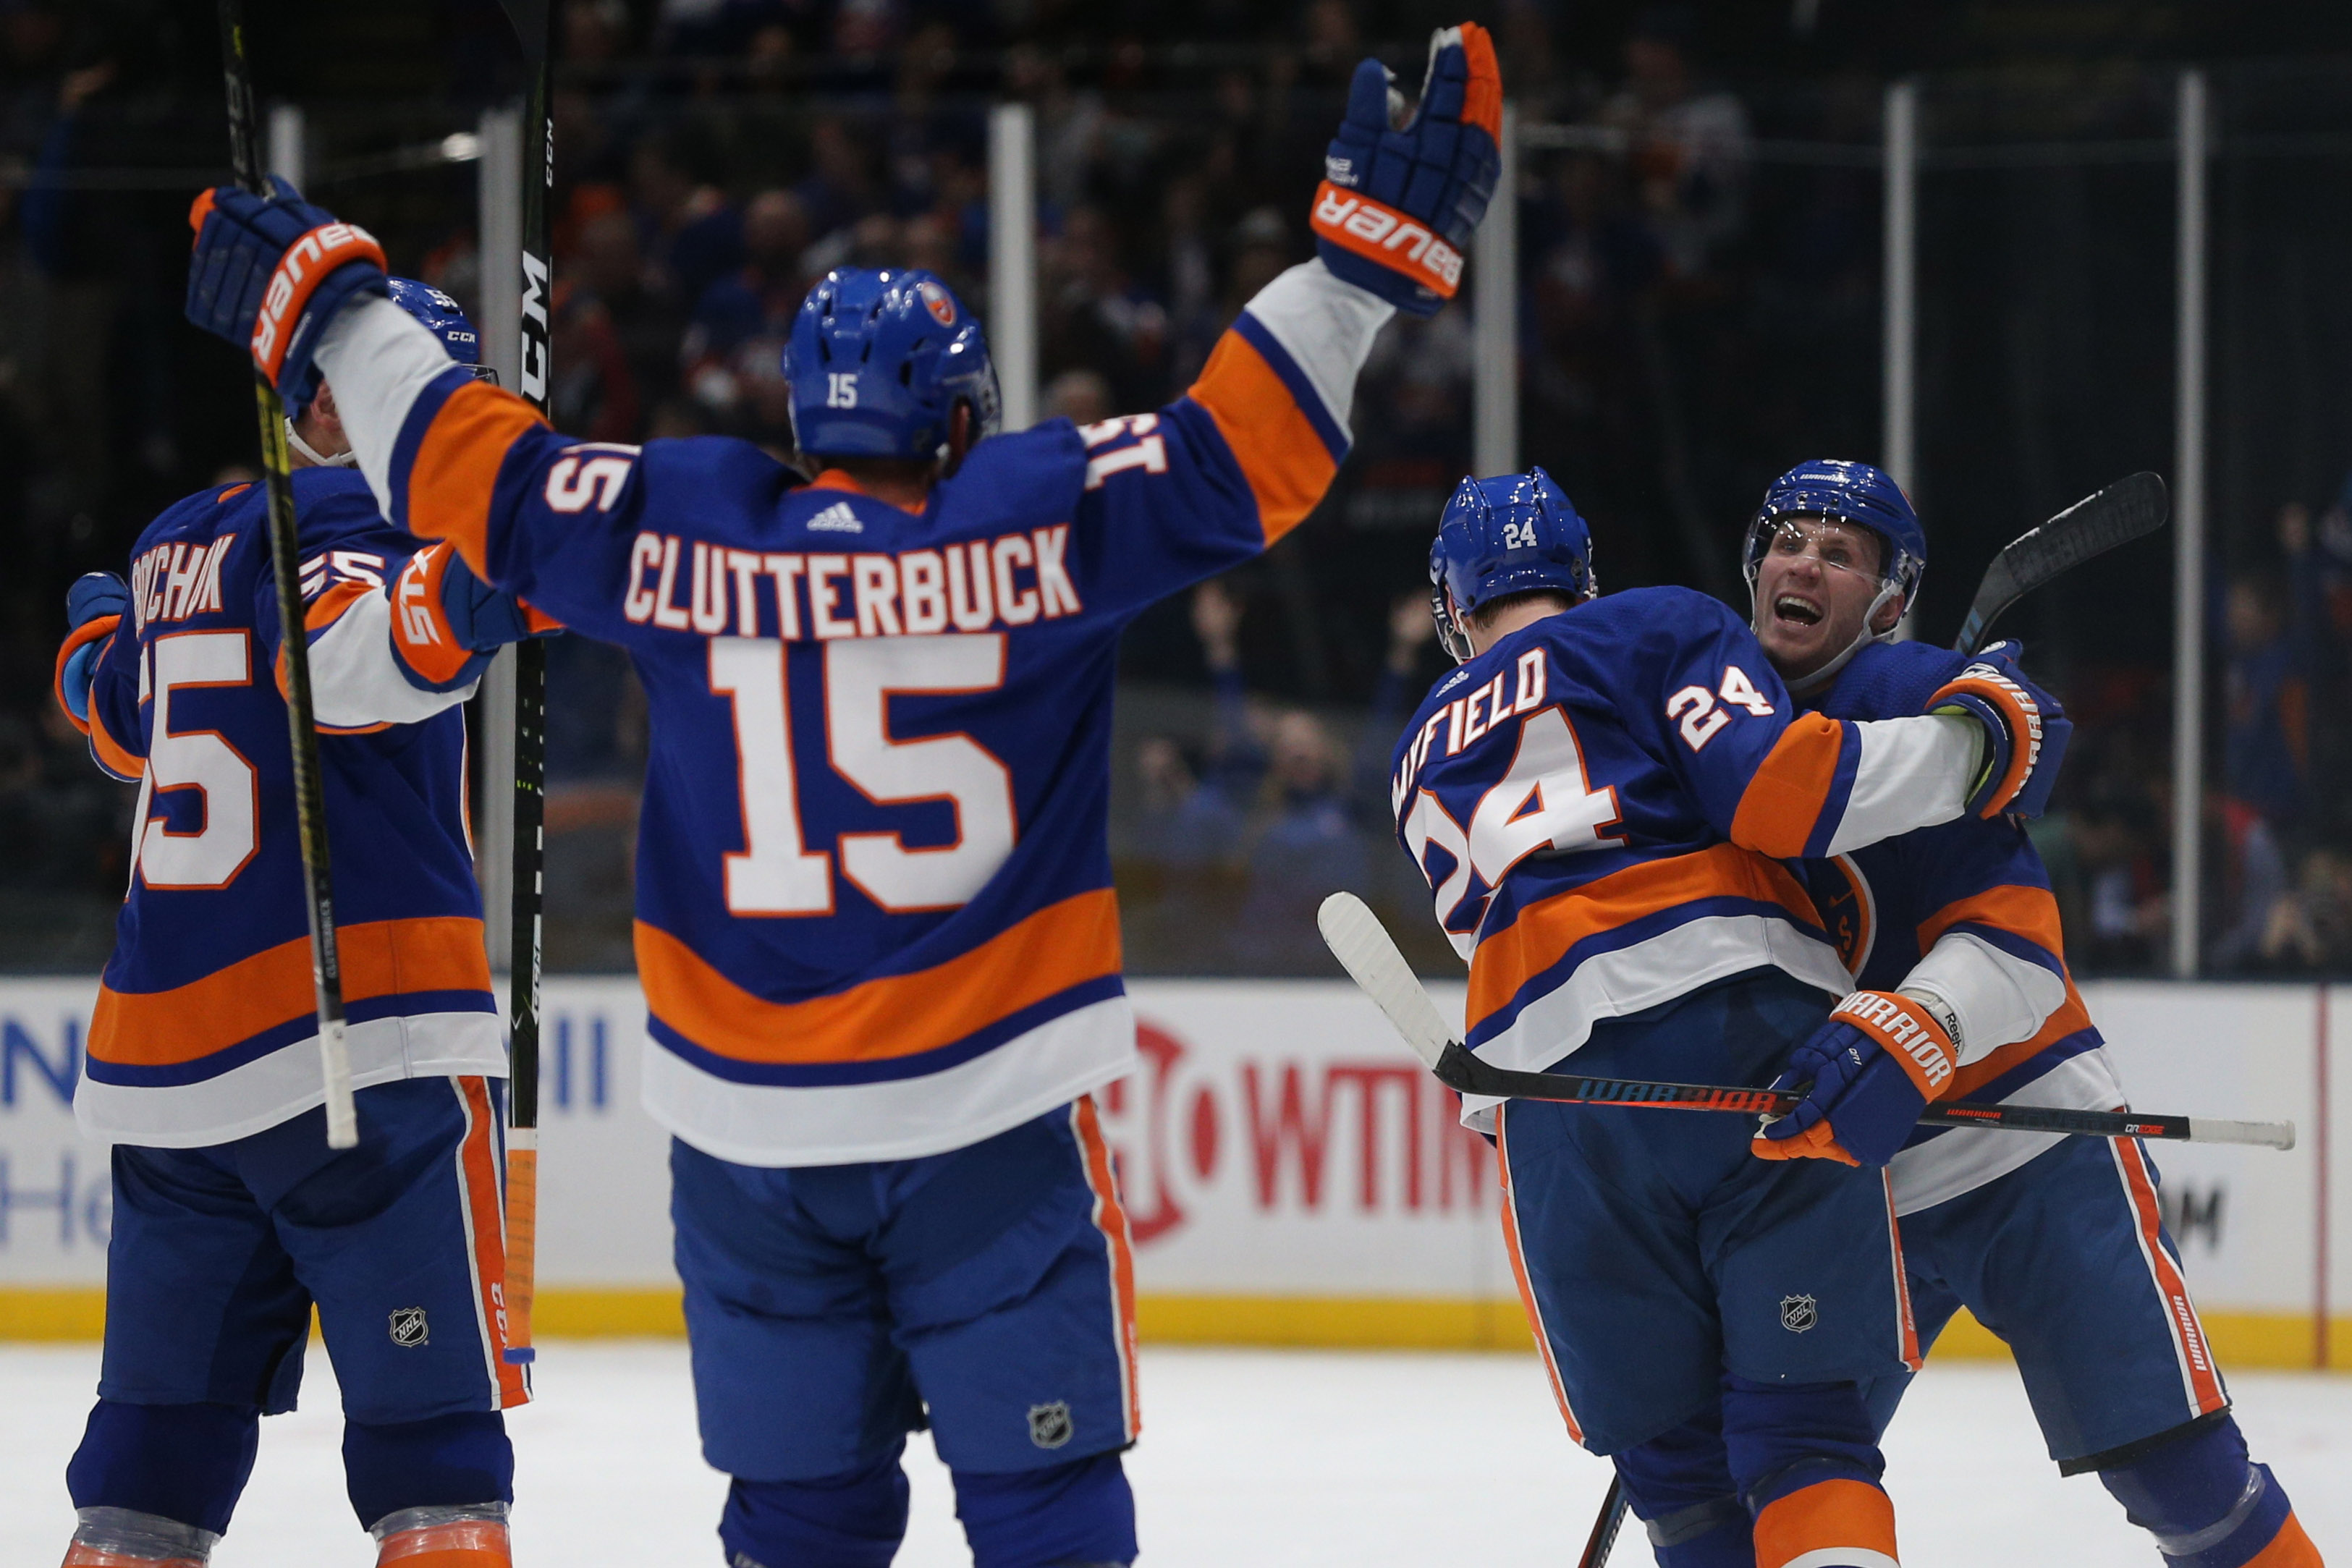 Feb 28, 2019; Brooklyn, NY, USA; New York Islanders center Casey Cizikas (53) celebrates his goal against the Toronto Maple Leafs with defenseman Johnny Boychuk (55) and right wing Cal Clutterbuck (15) and defenseman Scott Mayfield (24) during the second period at the Nassau Veterans Memorial Coliseum. Mandatory Credit: Brad Penner-USA TODAY Sports